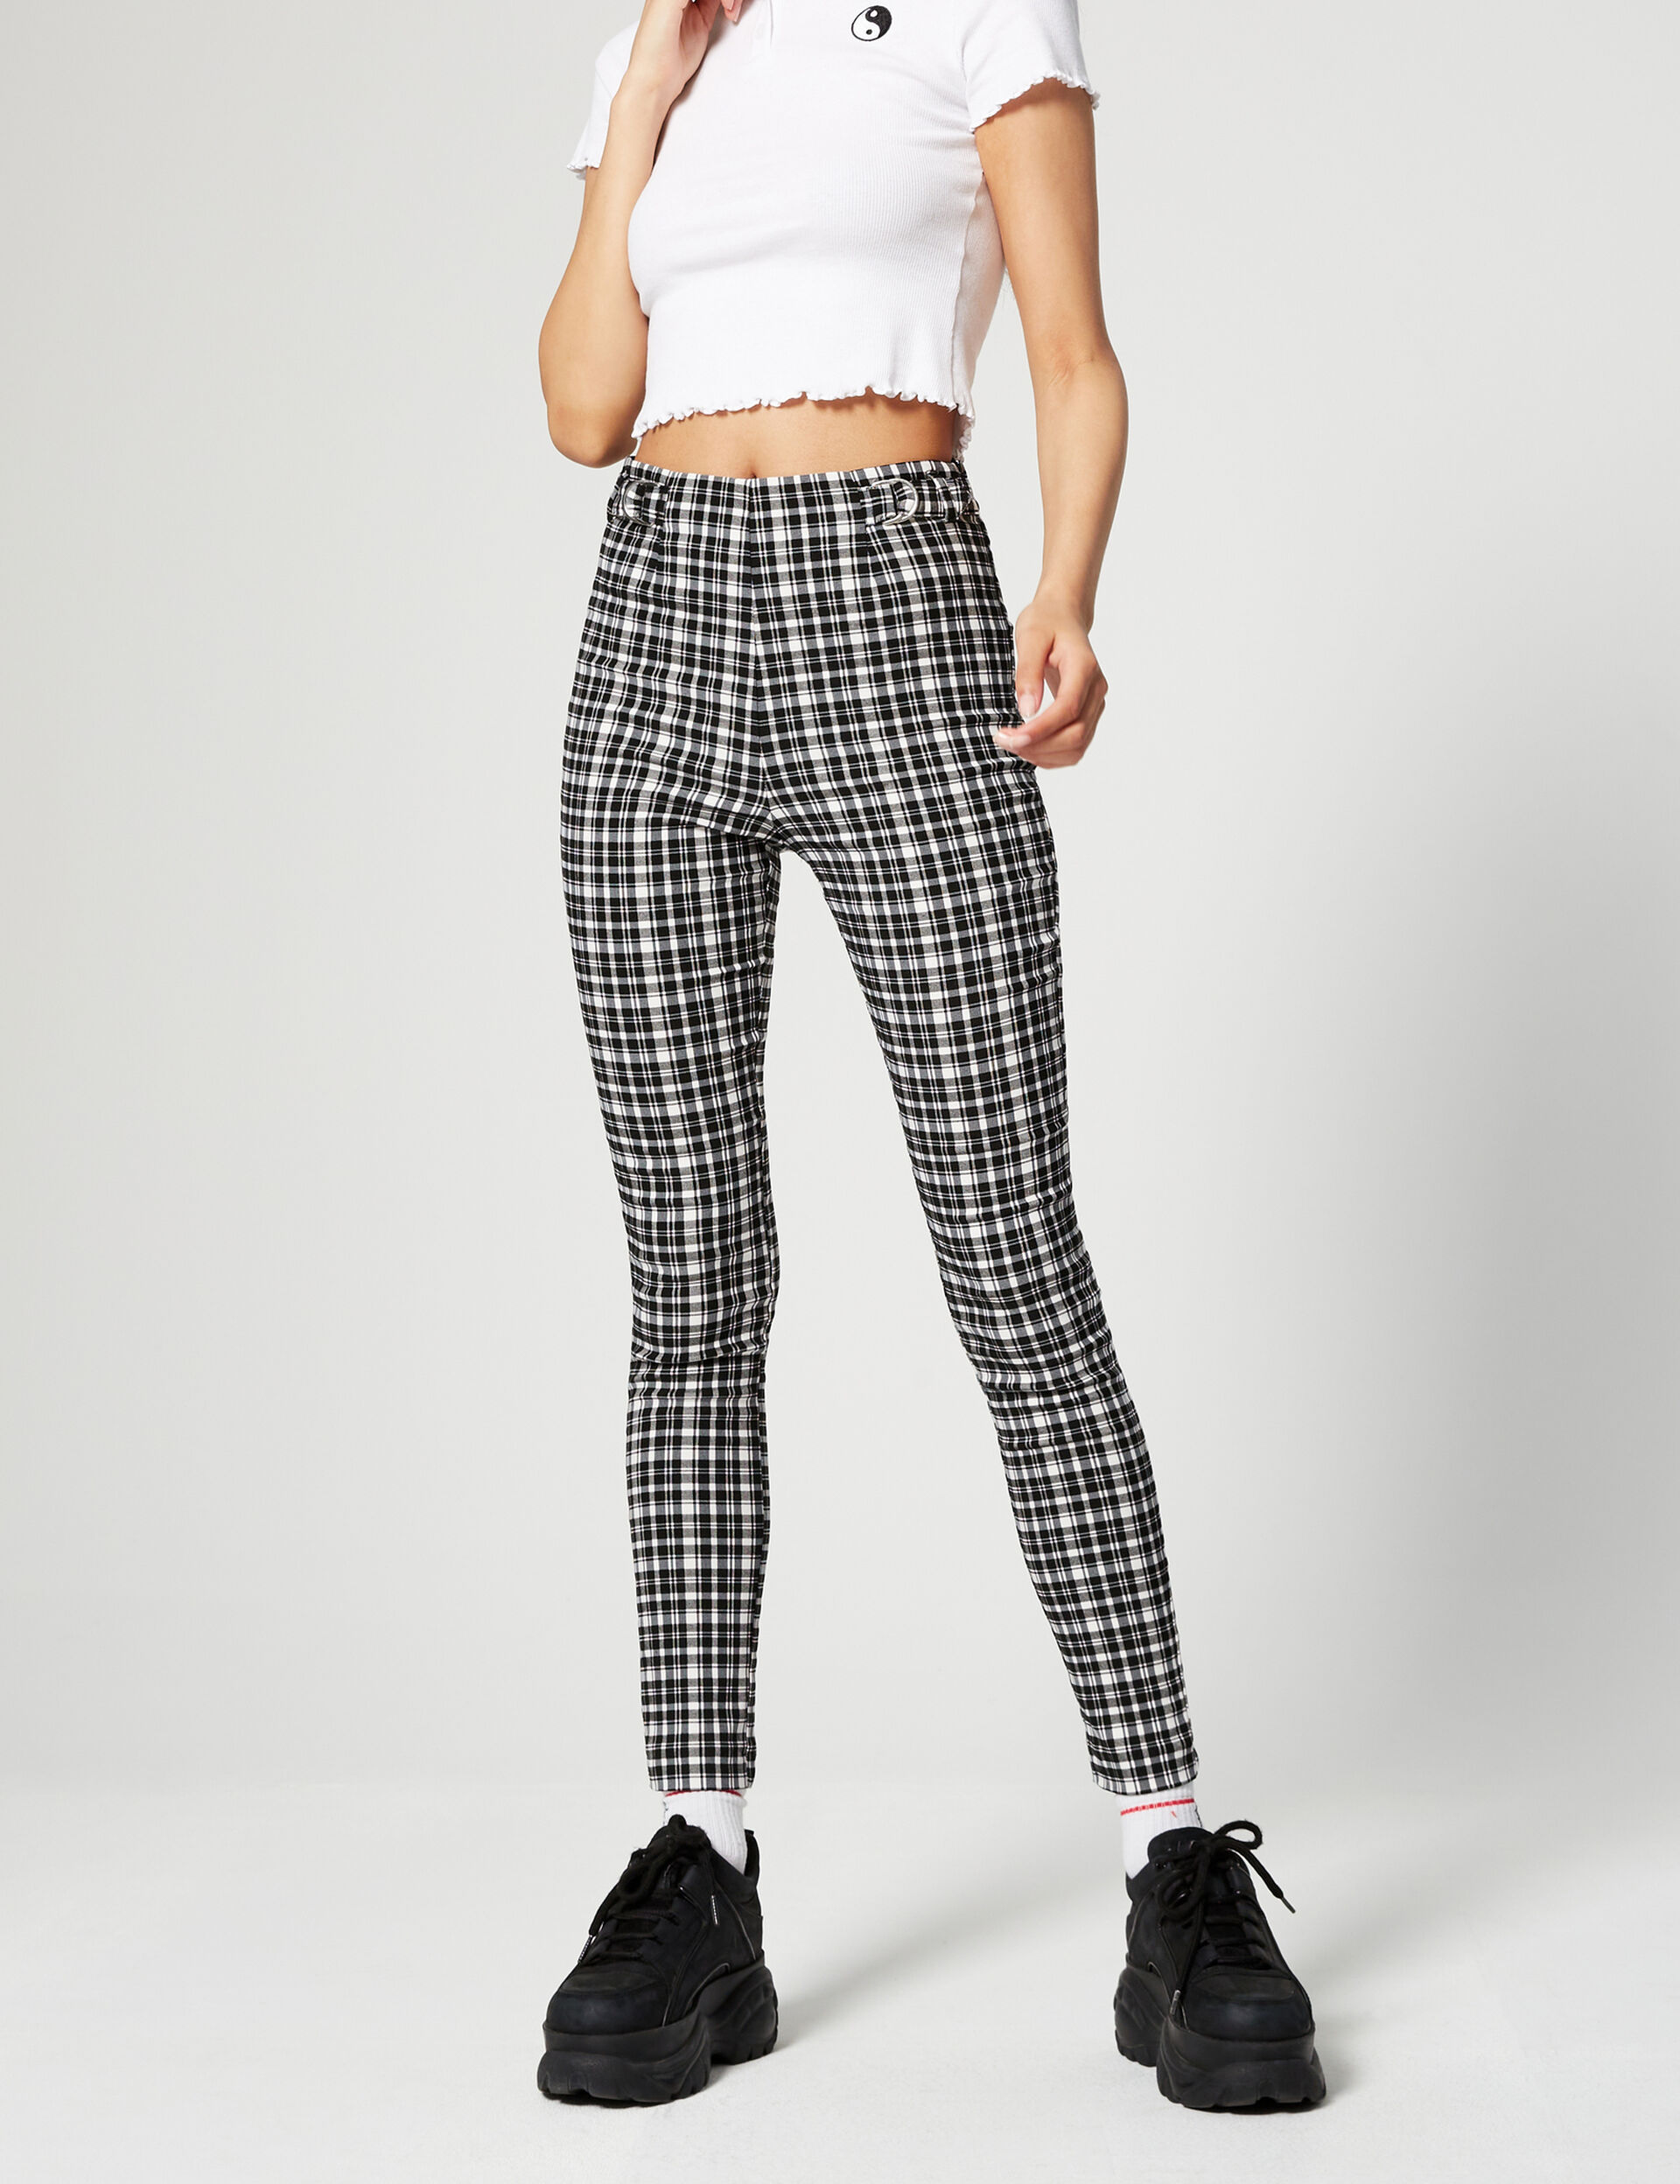 Printed trousers with buckles